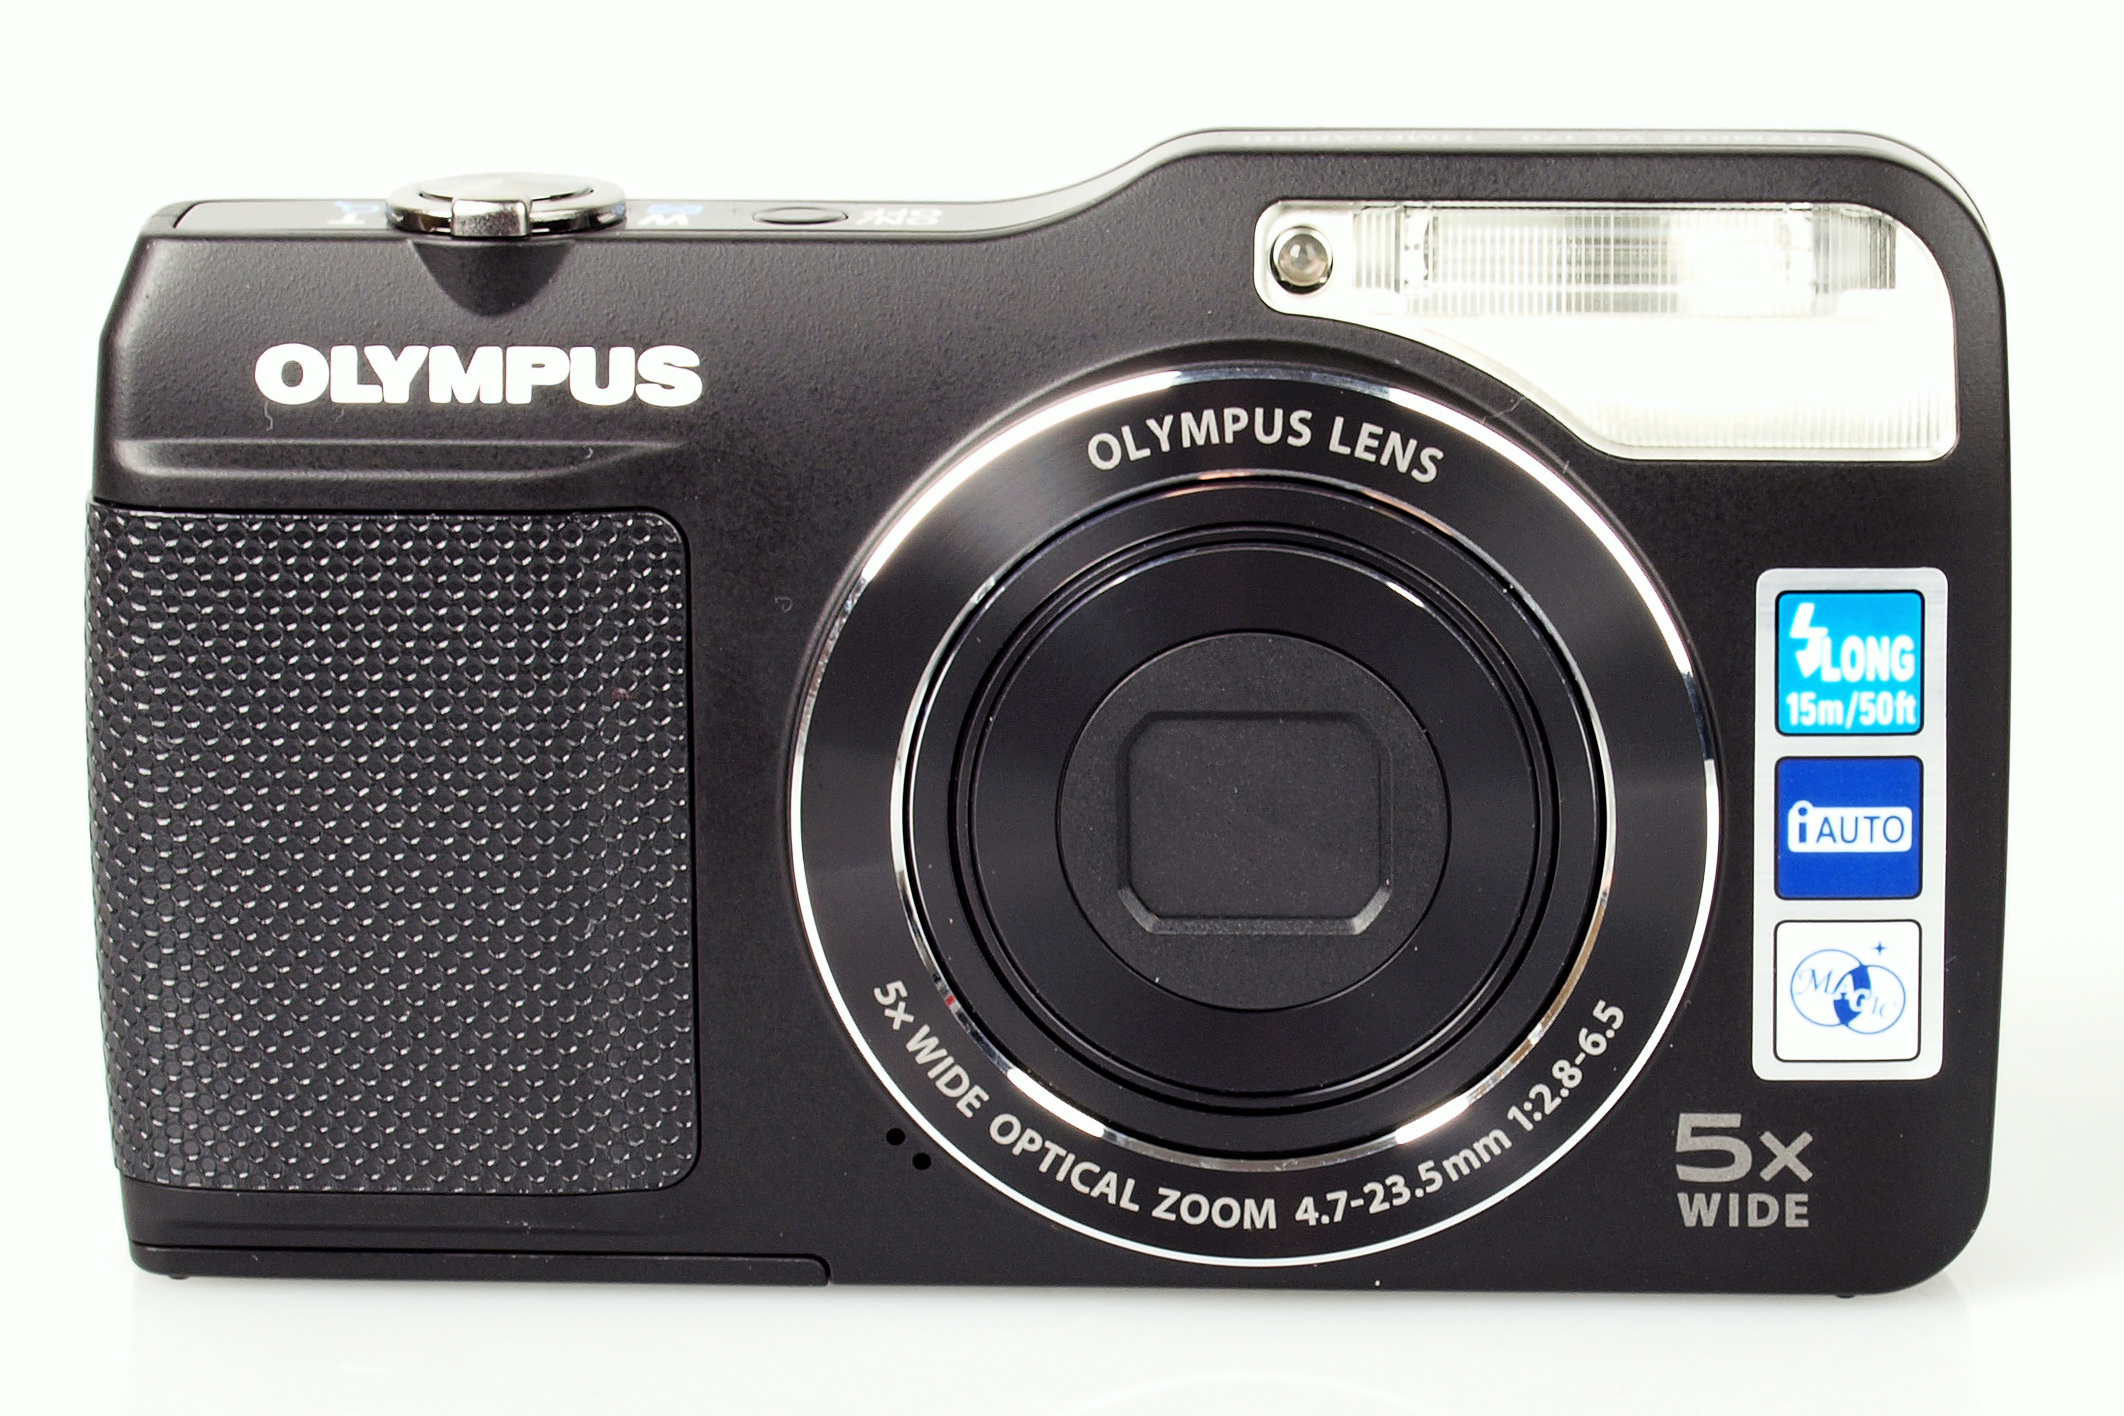 compact digital camera with a flash which is twice as powerful as a regular compact camera the vg 170 is available in white red and black for 8900 - Olympus Digital Camera